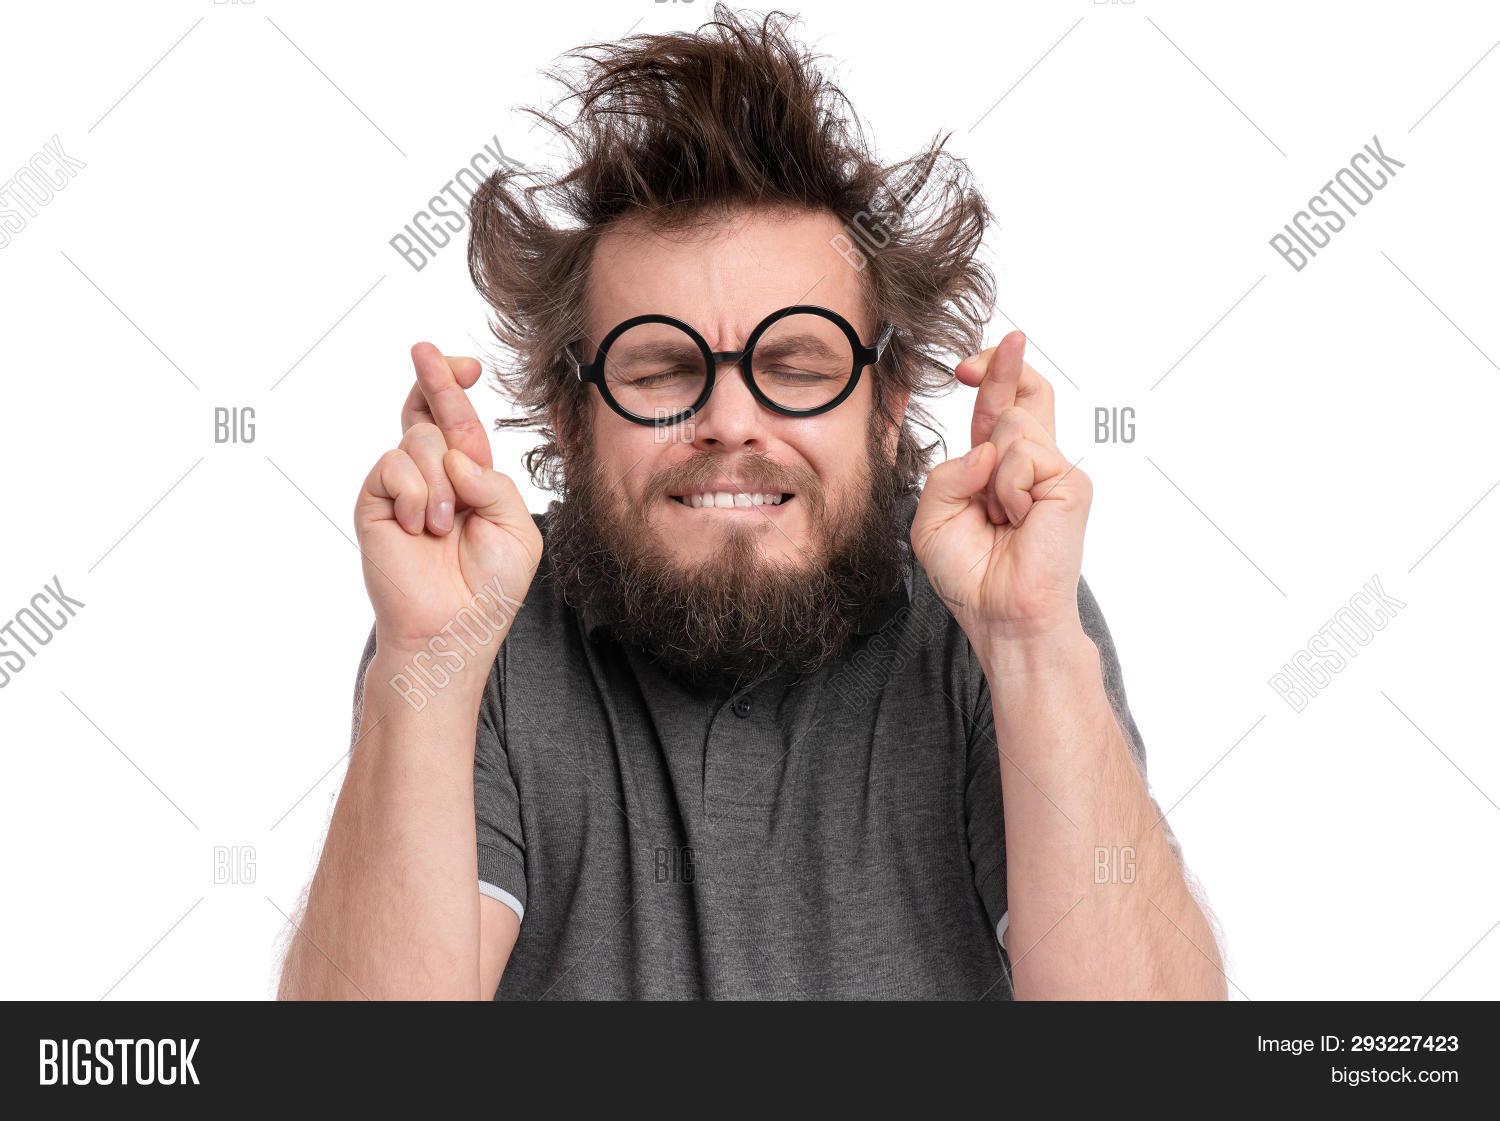 adult,attitude,background,beard,bearded,boy,character,concept,confident,crazy,crossed,dreaming,emotion,expression,eyeglasses,face,finger,freak,fun,funny,gesture,guy,hair,haircut,happy,head,hope,human,idea,idiot,isolated,luck,male,man,people,person,pleading,portrait,pray,problem,request,sign,stress,superstition,superstitious,symbol,tensed,white,worry,young